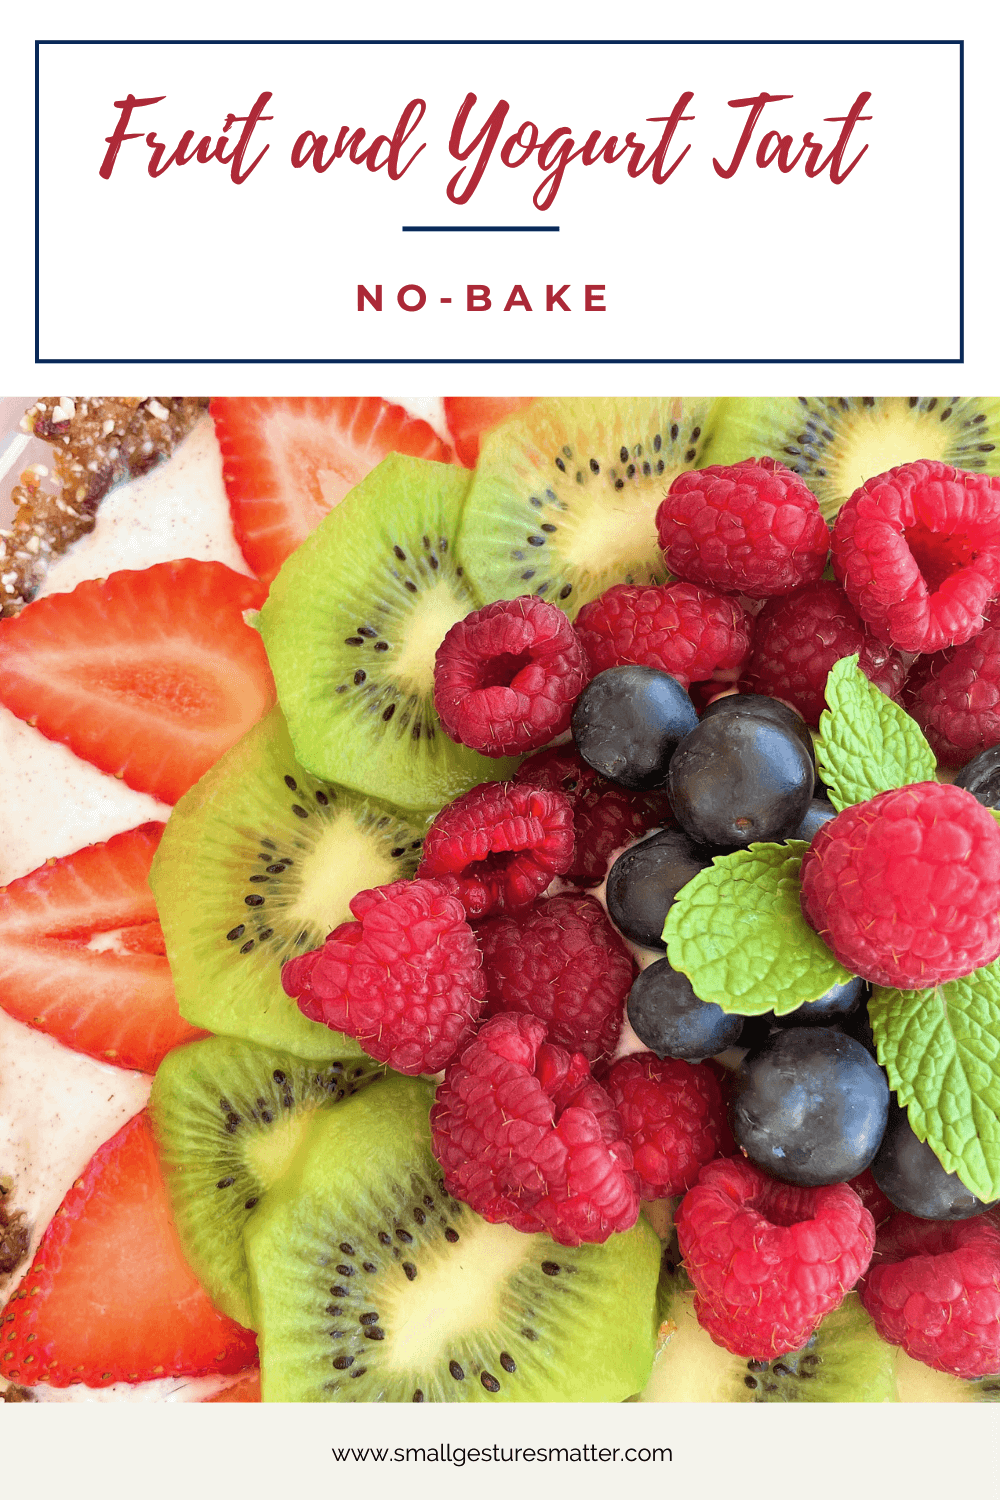 No-Bake Fruit and Yogurt Tart